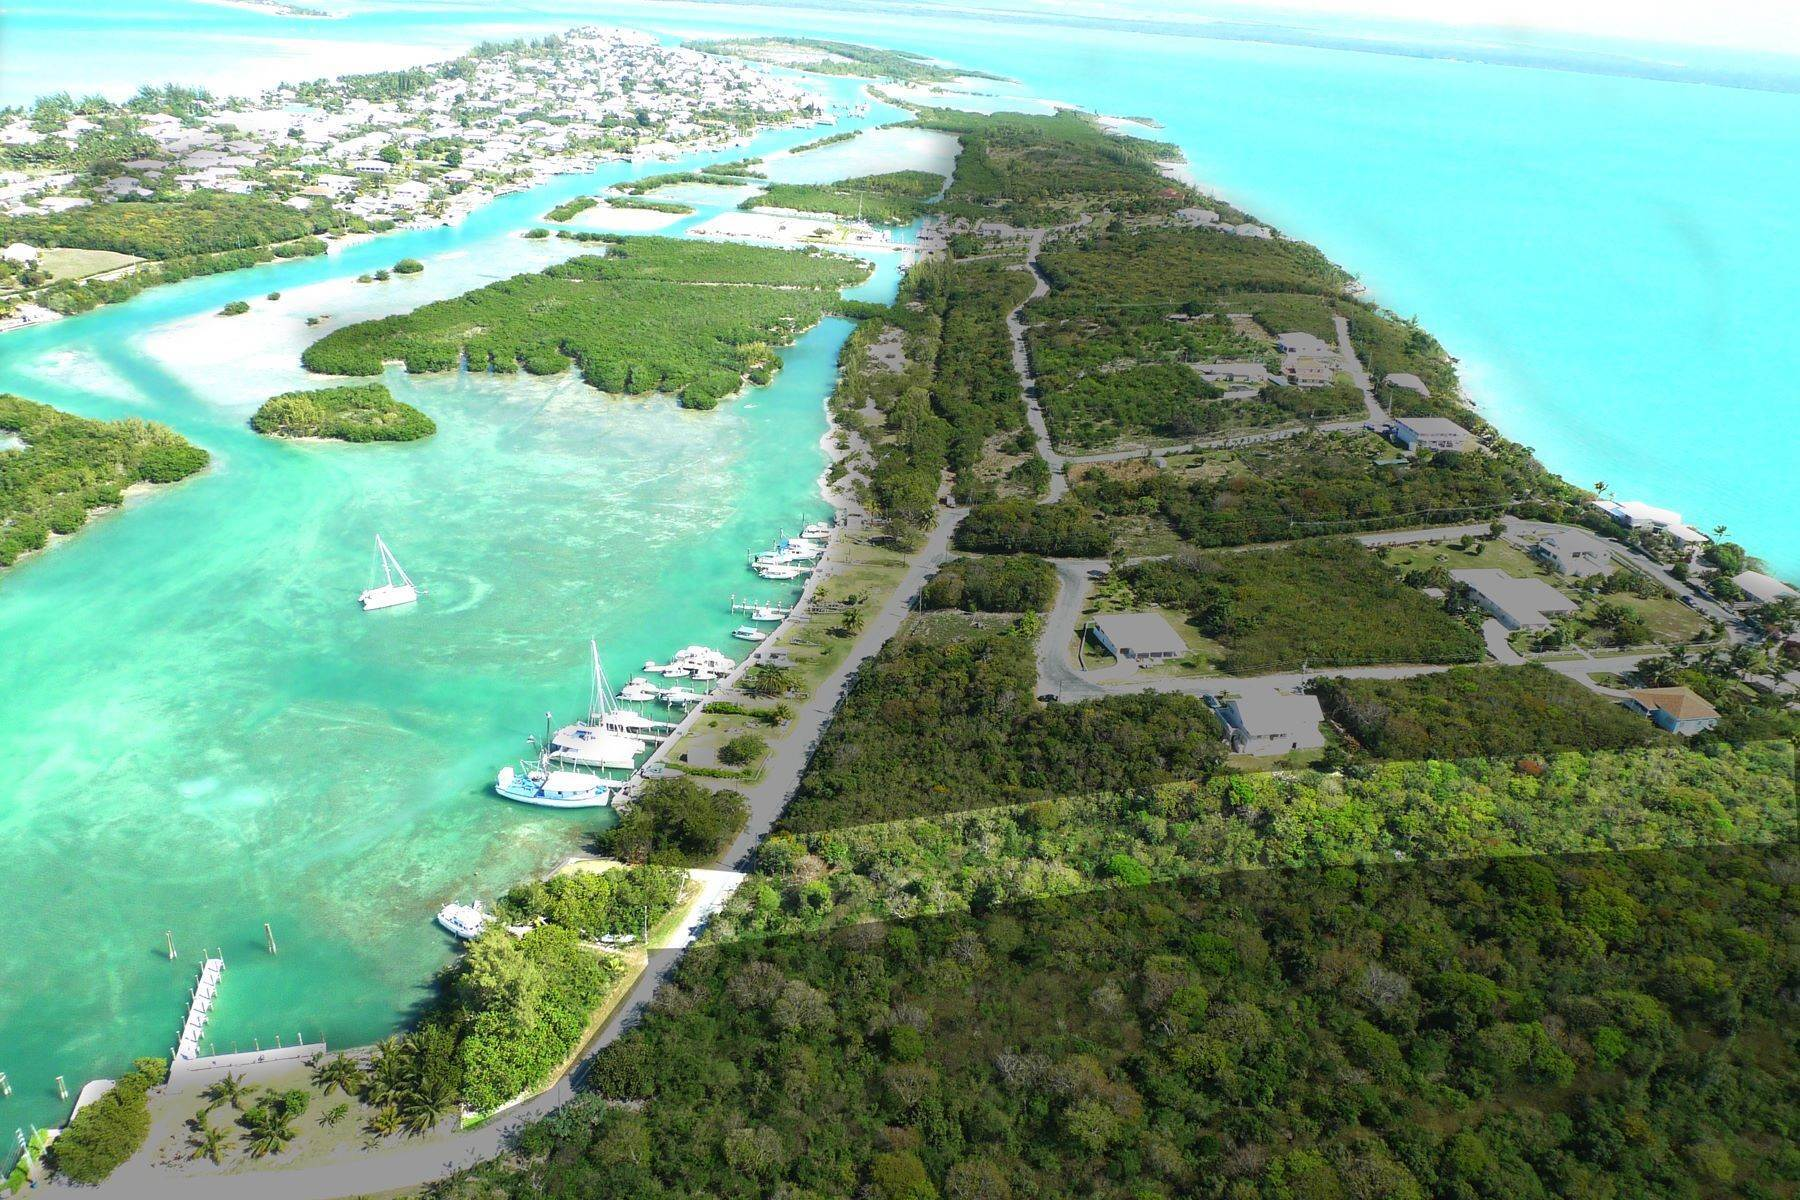 Land for Sale at Russell Island Acreage with Dock Russell Island, Spanish Wells, Eleuthera Bahamas